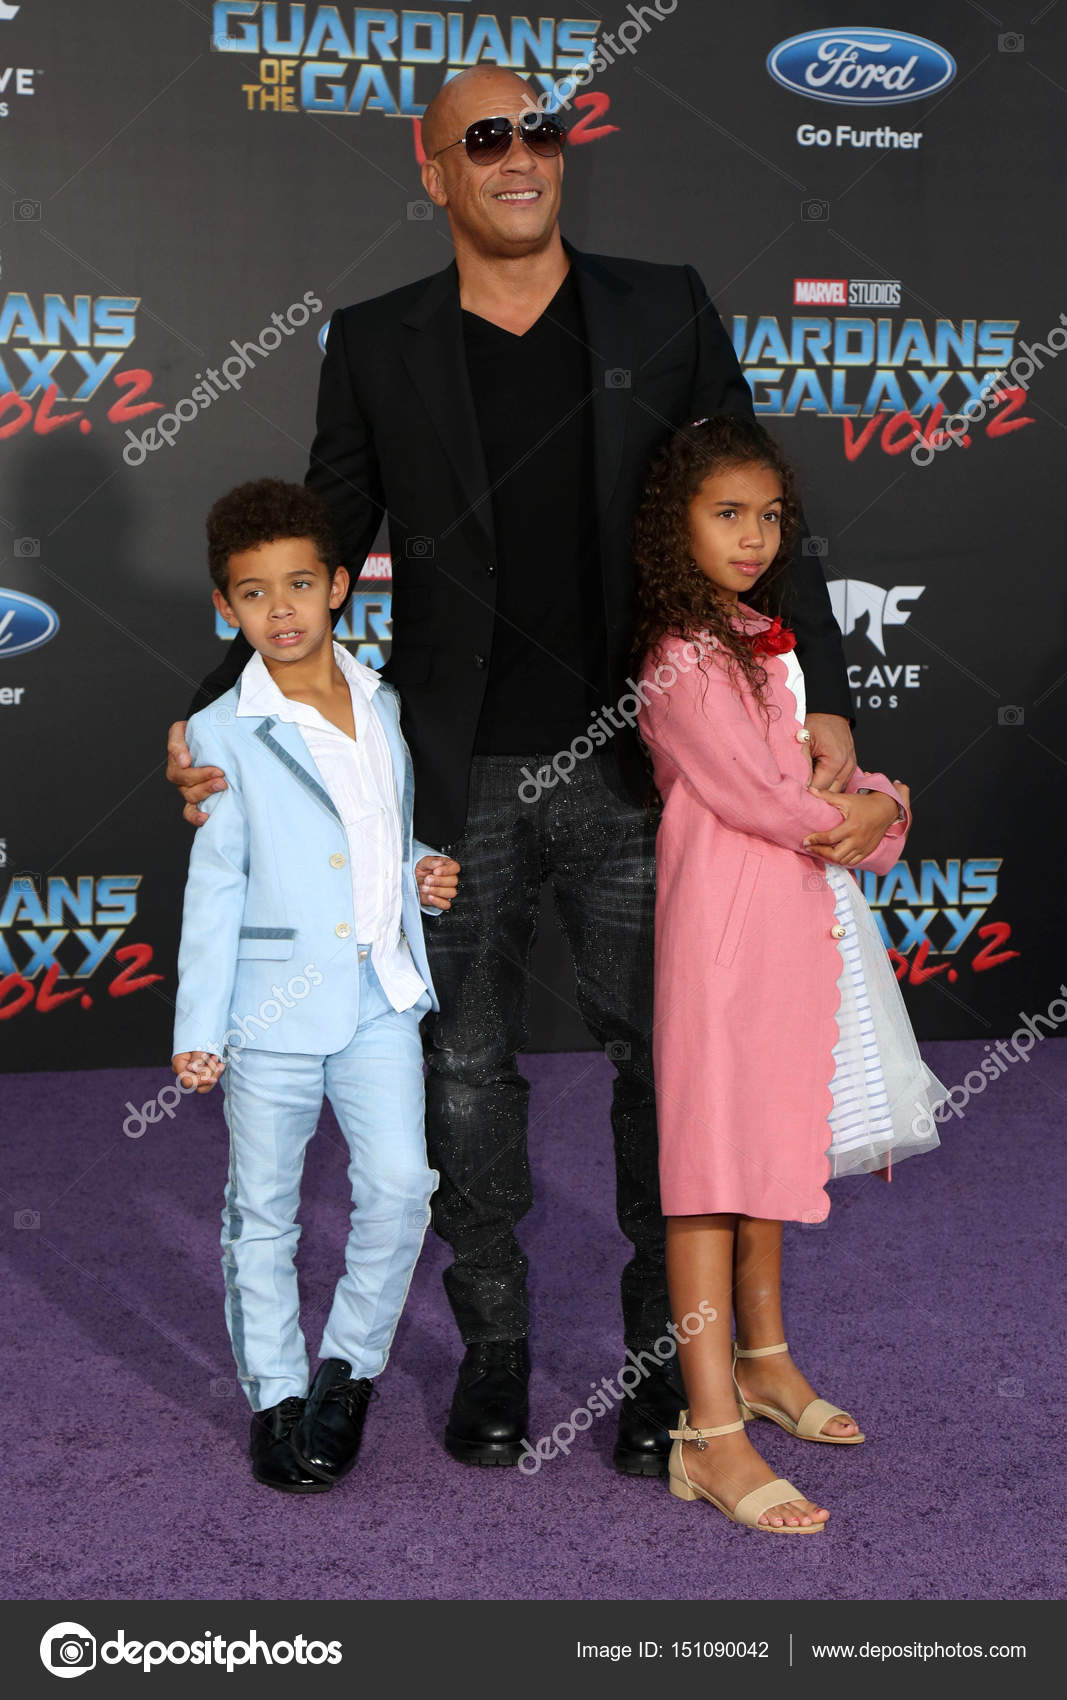 Vin diesel hania riley sinclair vincent sinclair at the guardians of the galaxy vol 2 los angeles premiere dolby theater hollywood